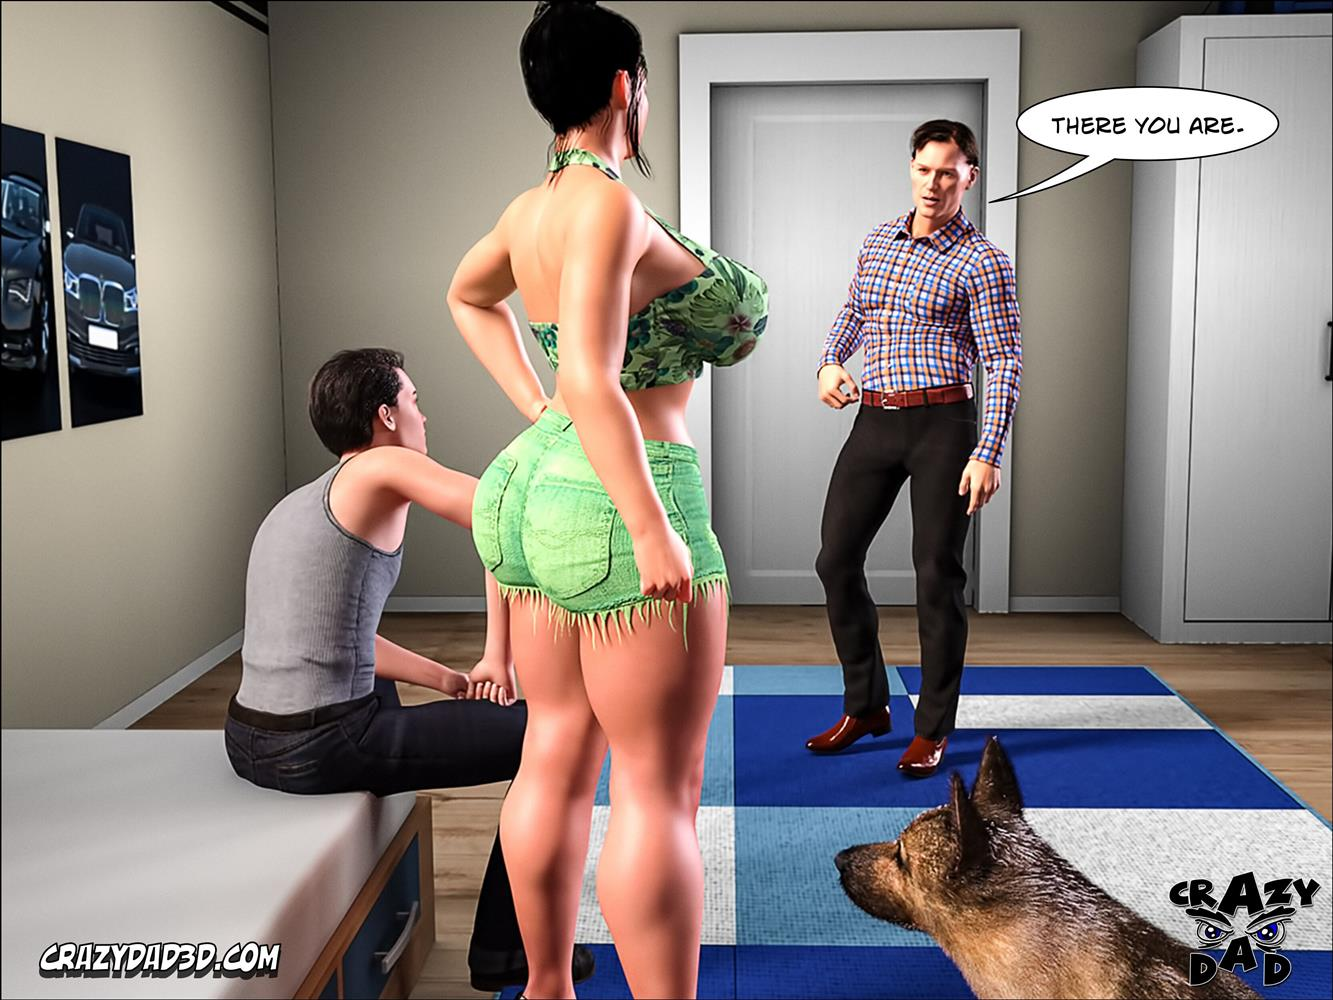 Mom's Help 21 [Crazy Dad 3D] - Foto 5